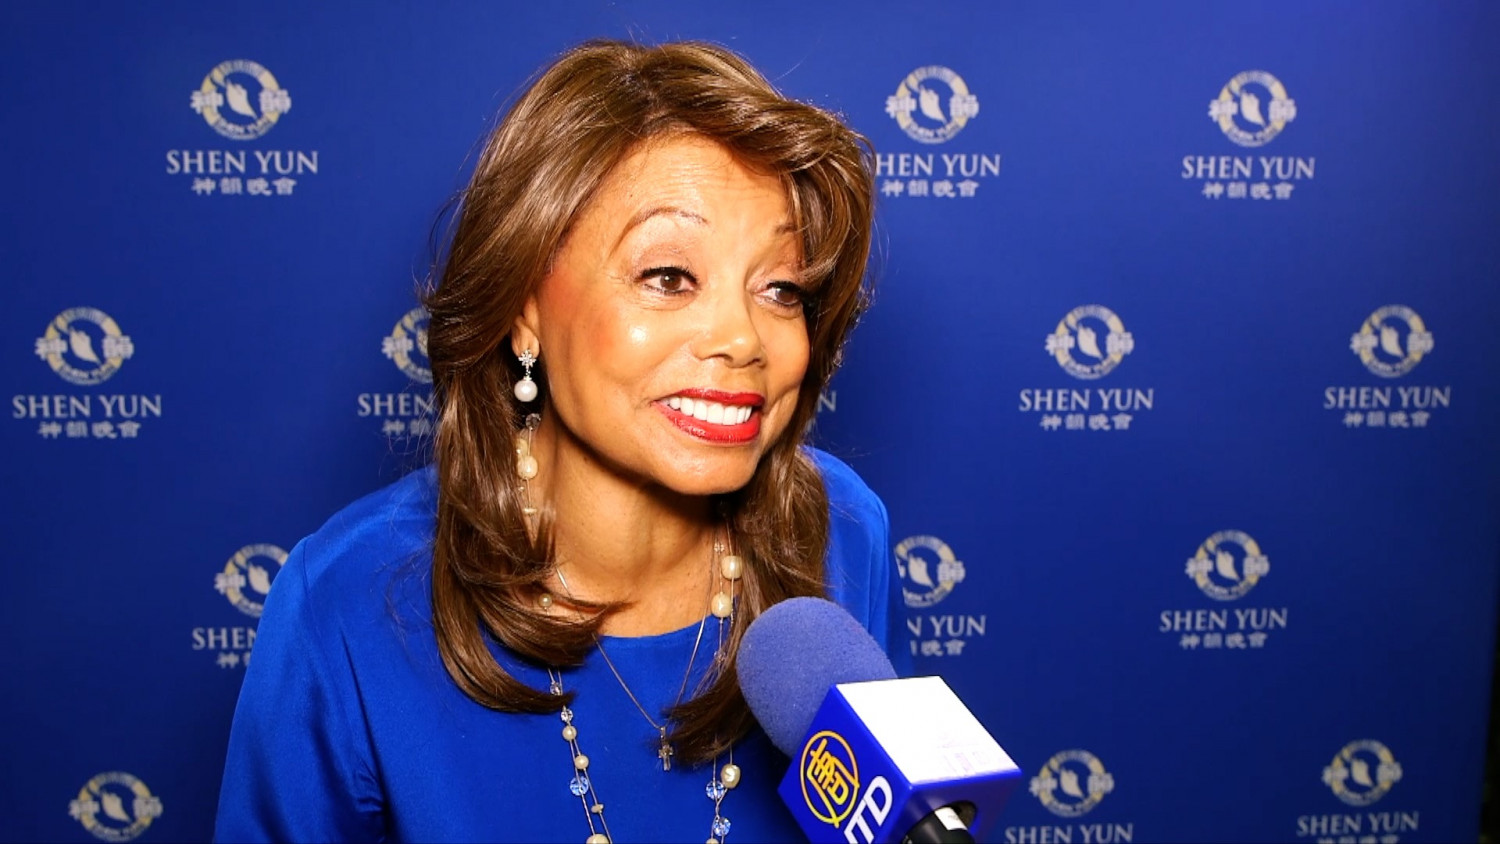 Grammy Award-Winning Vocalist Says Shen Yun is 'Inspiring' and 'Extraordinary'